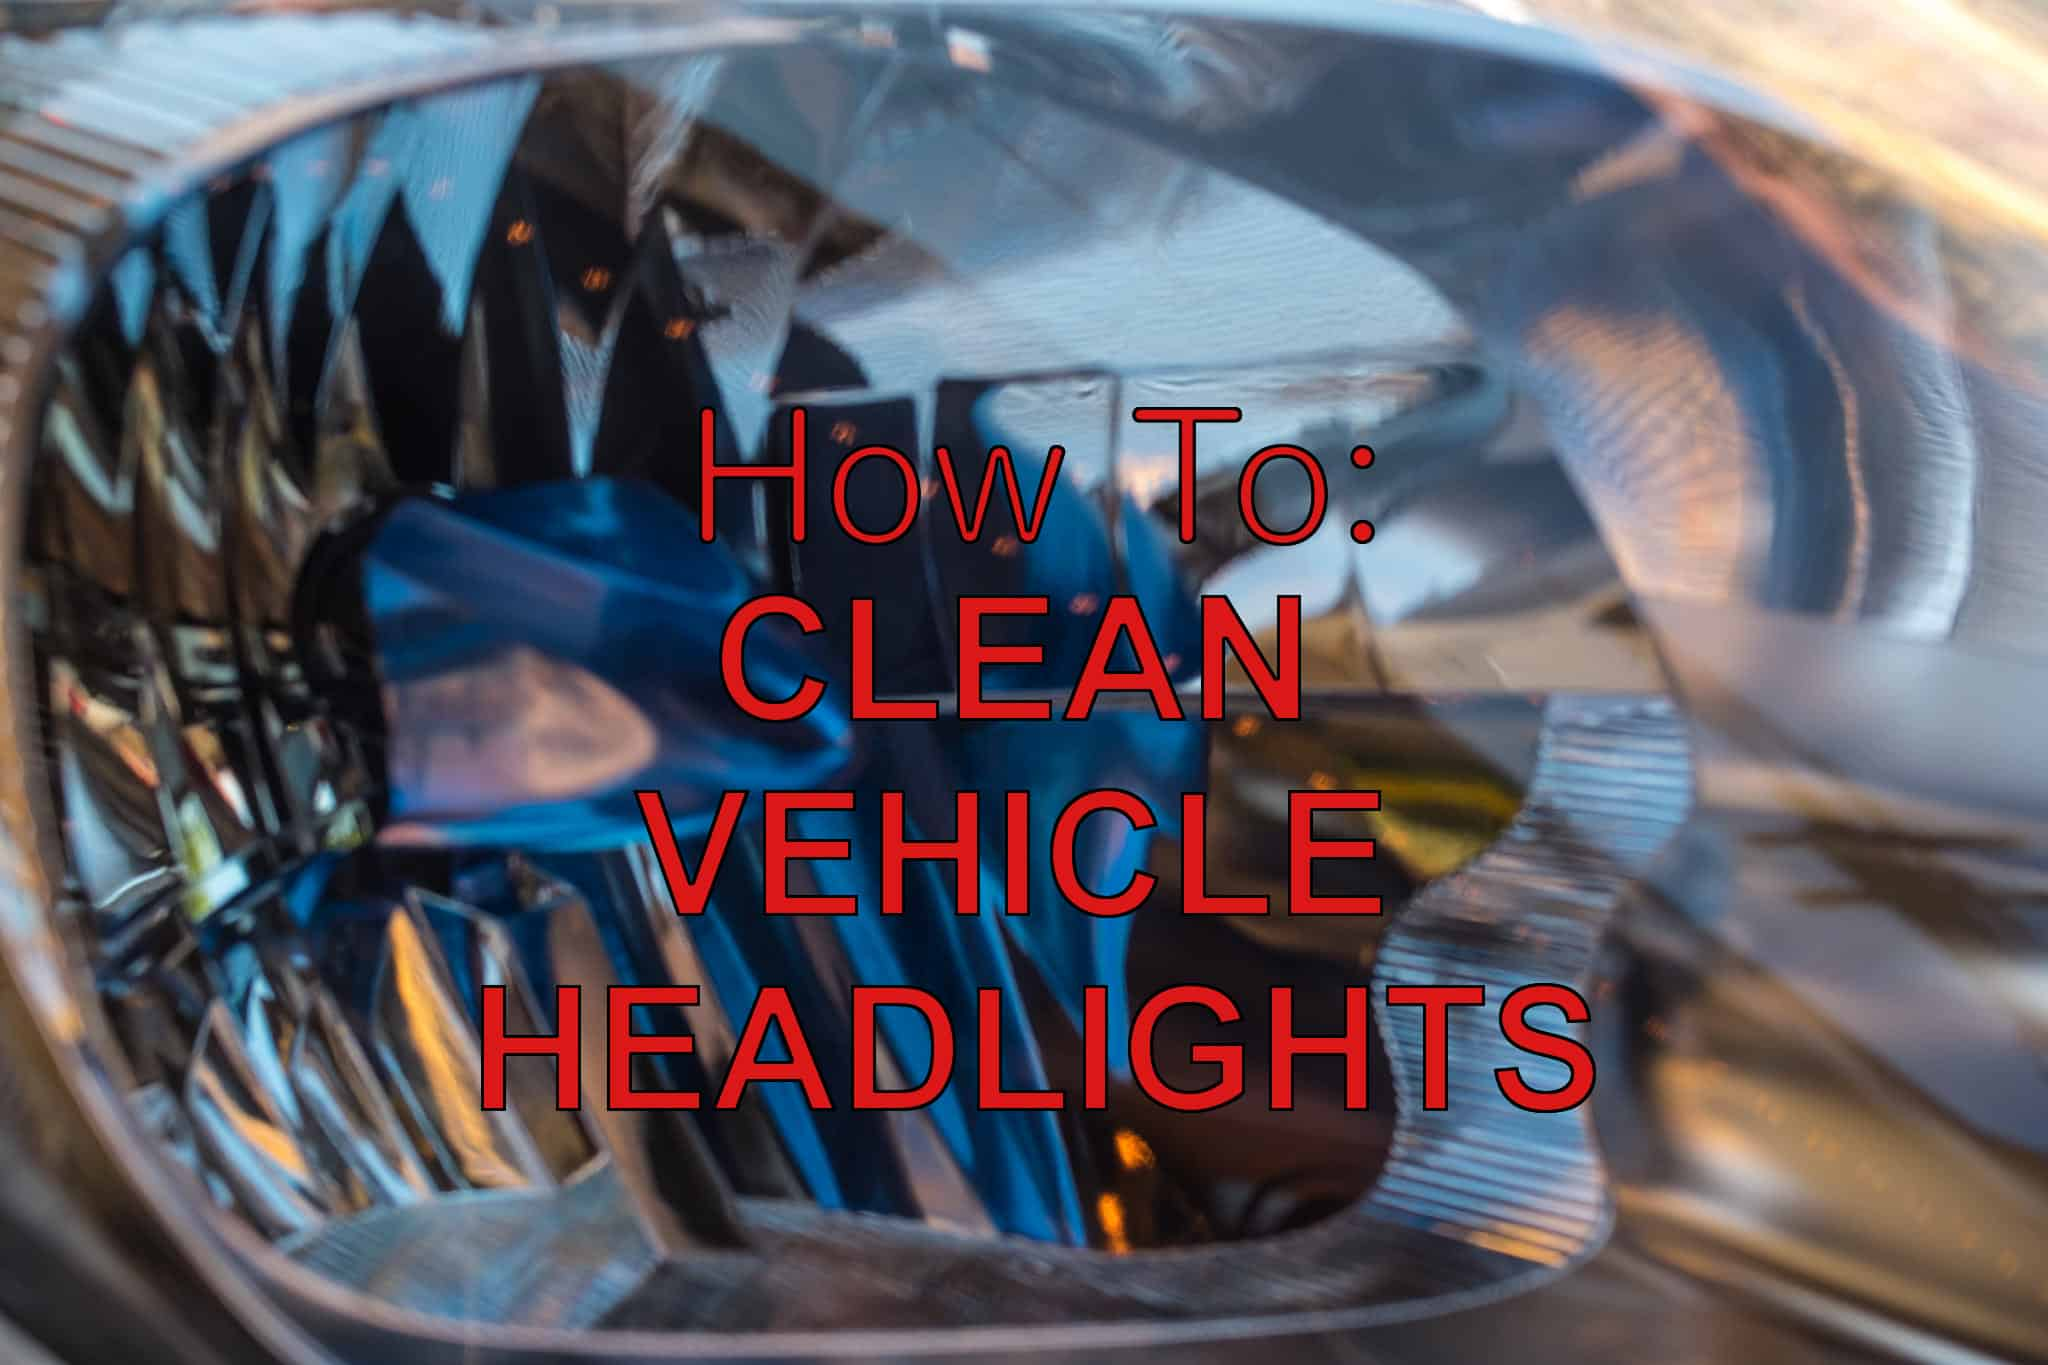 How to Clean Vehicle Headlights – Make Your Headlights Look